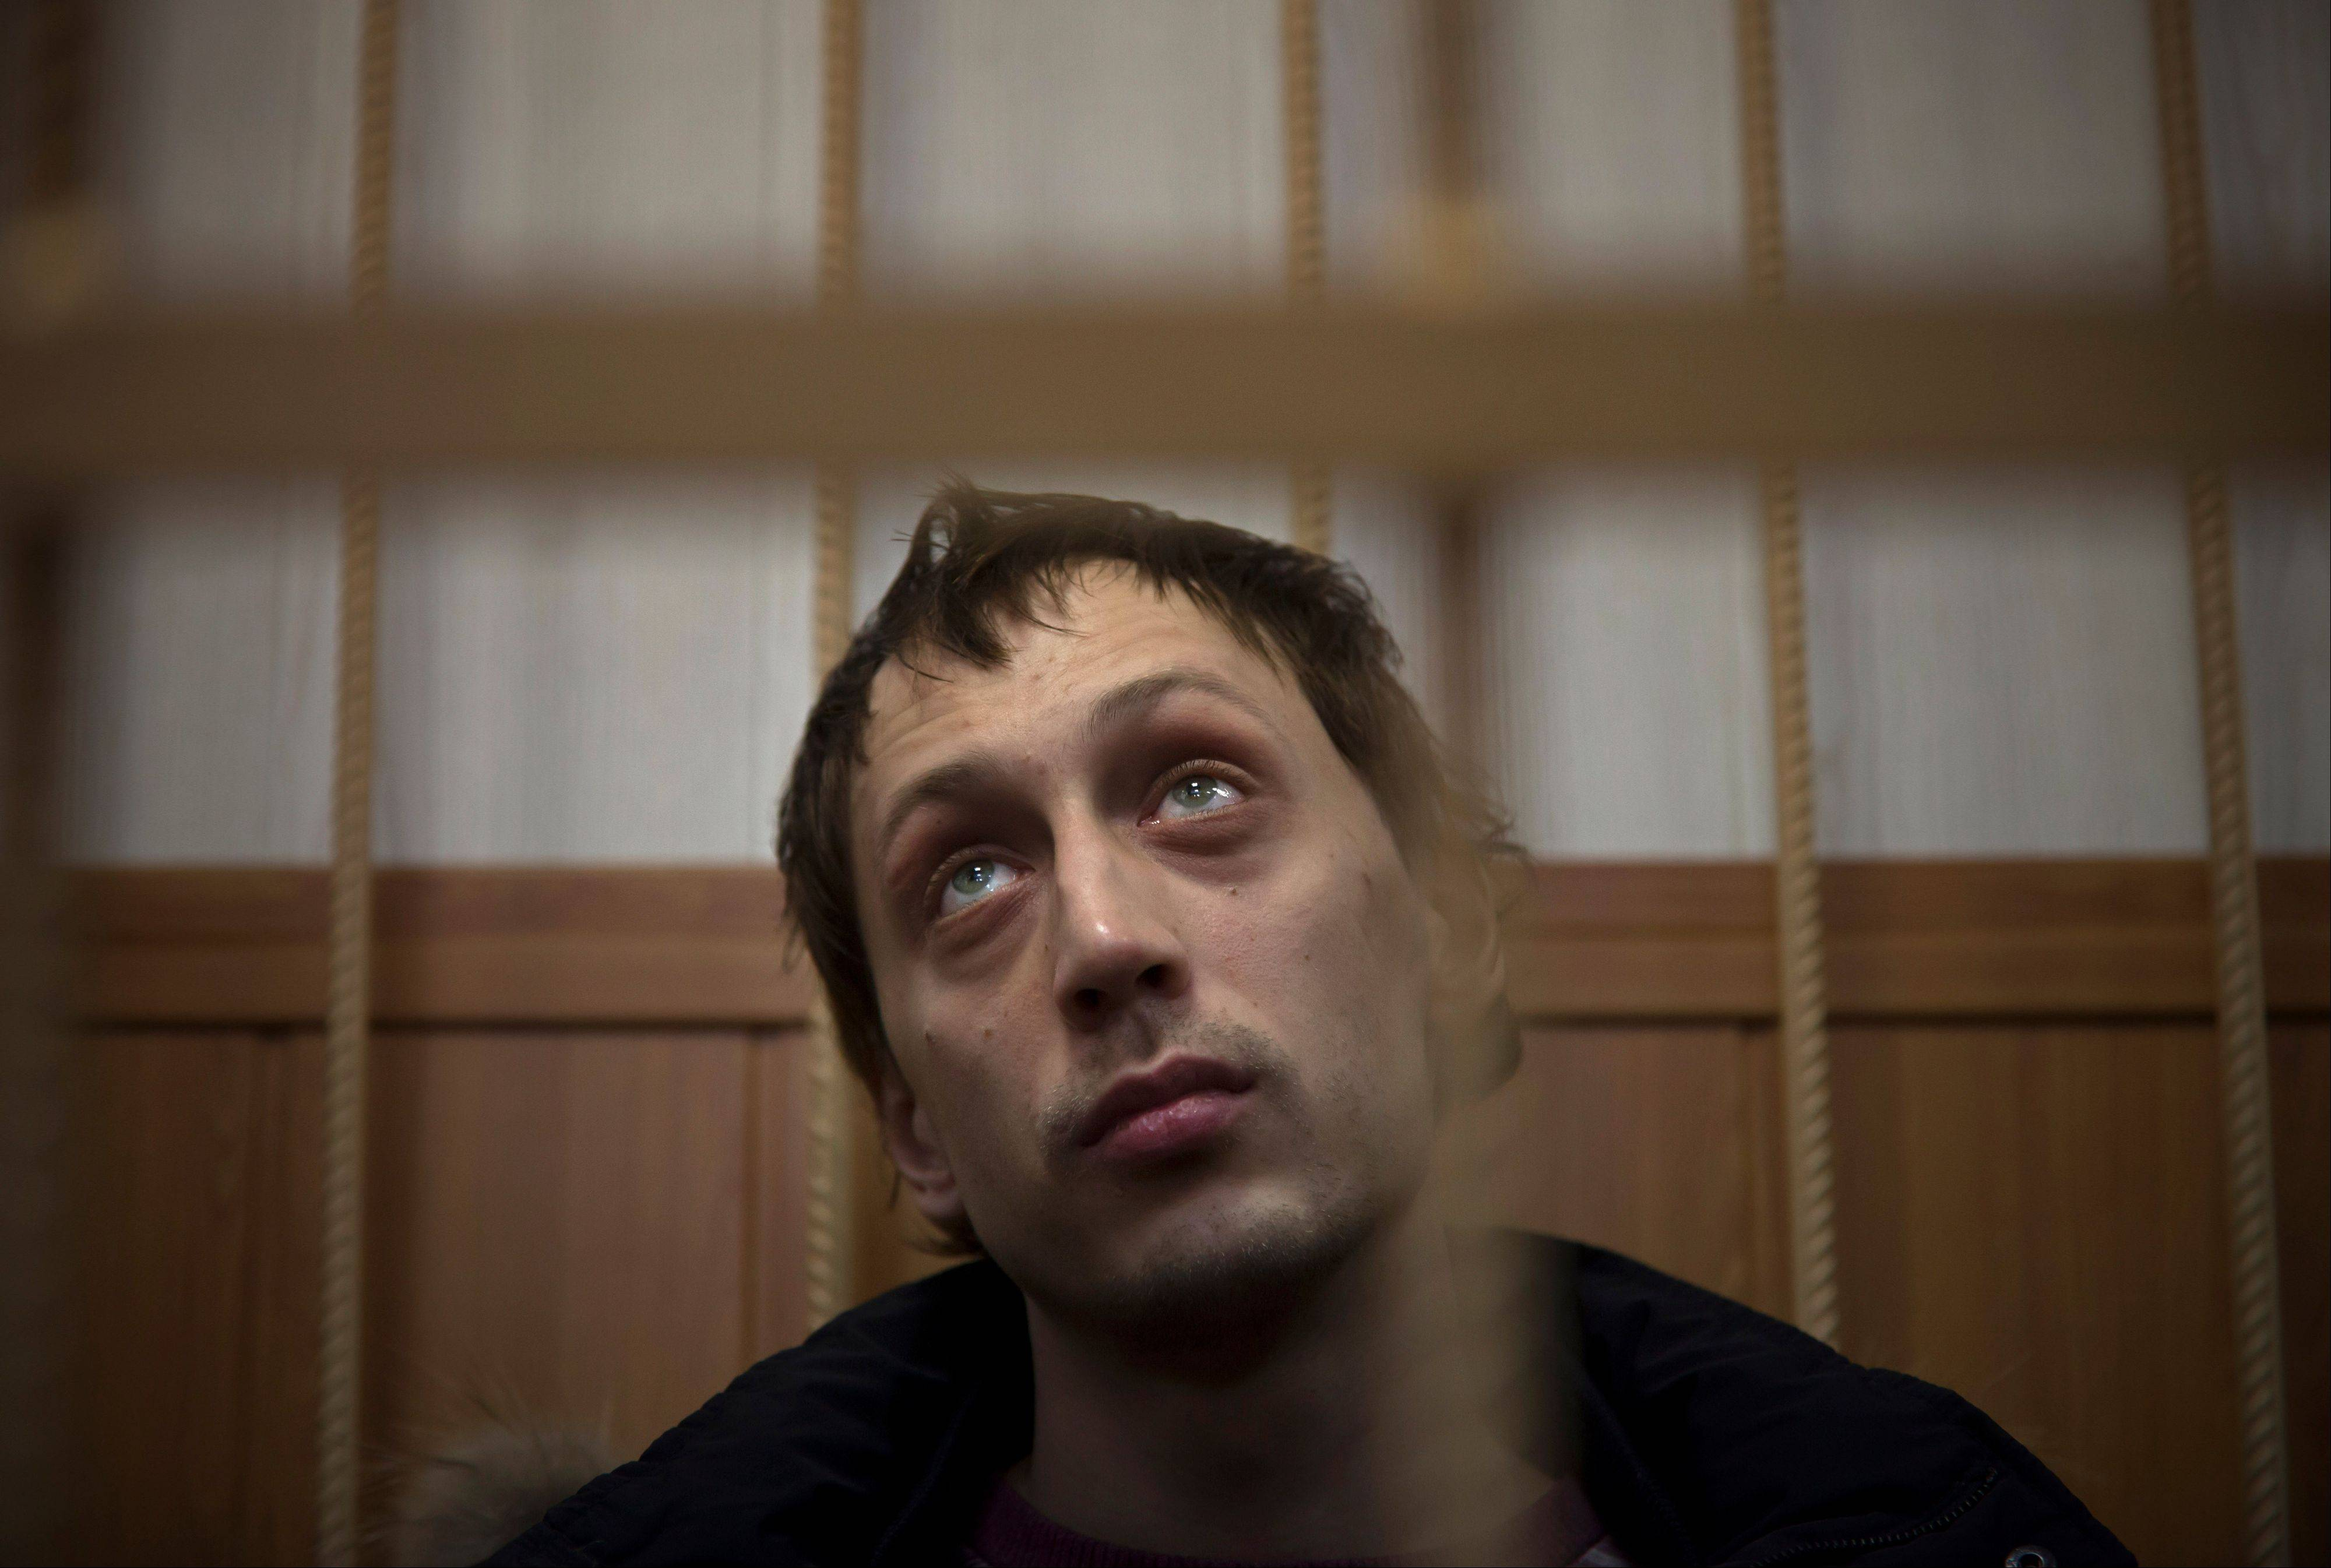 Bolshoi soloist Pavel Dmitrichenko listens in a courtroom in Moscow, Russia, Thursday, March 7, 2013. The star dancer accused of masterminding the attack on the Bolshoi ballet chief acknowledged Thursday that he gave the go-ahead for the attack, but said he did not order anyone to throw acid on the artistic director�s face. Dmitrichenko told a Moscow court that he had complained about ballet chief Sergei Filin to an acquaintance, who offered to �beat him up.�